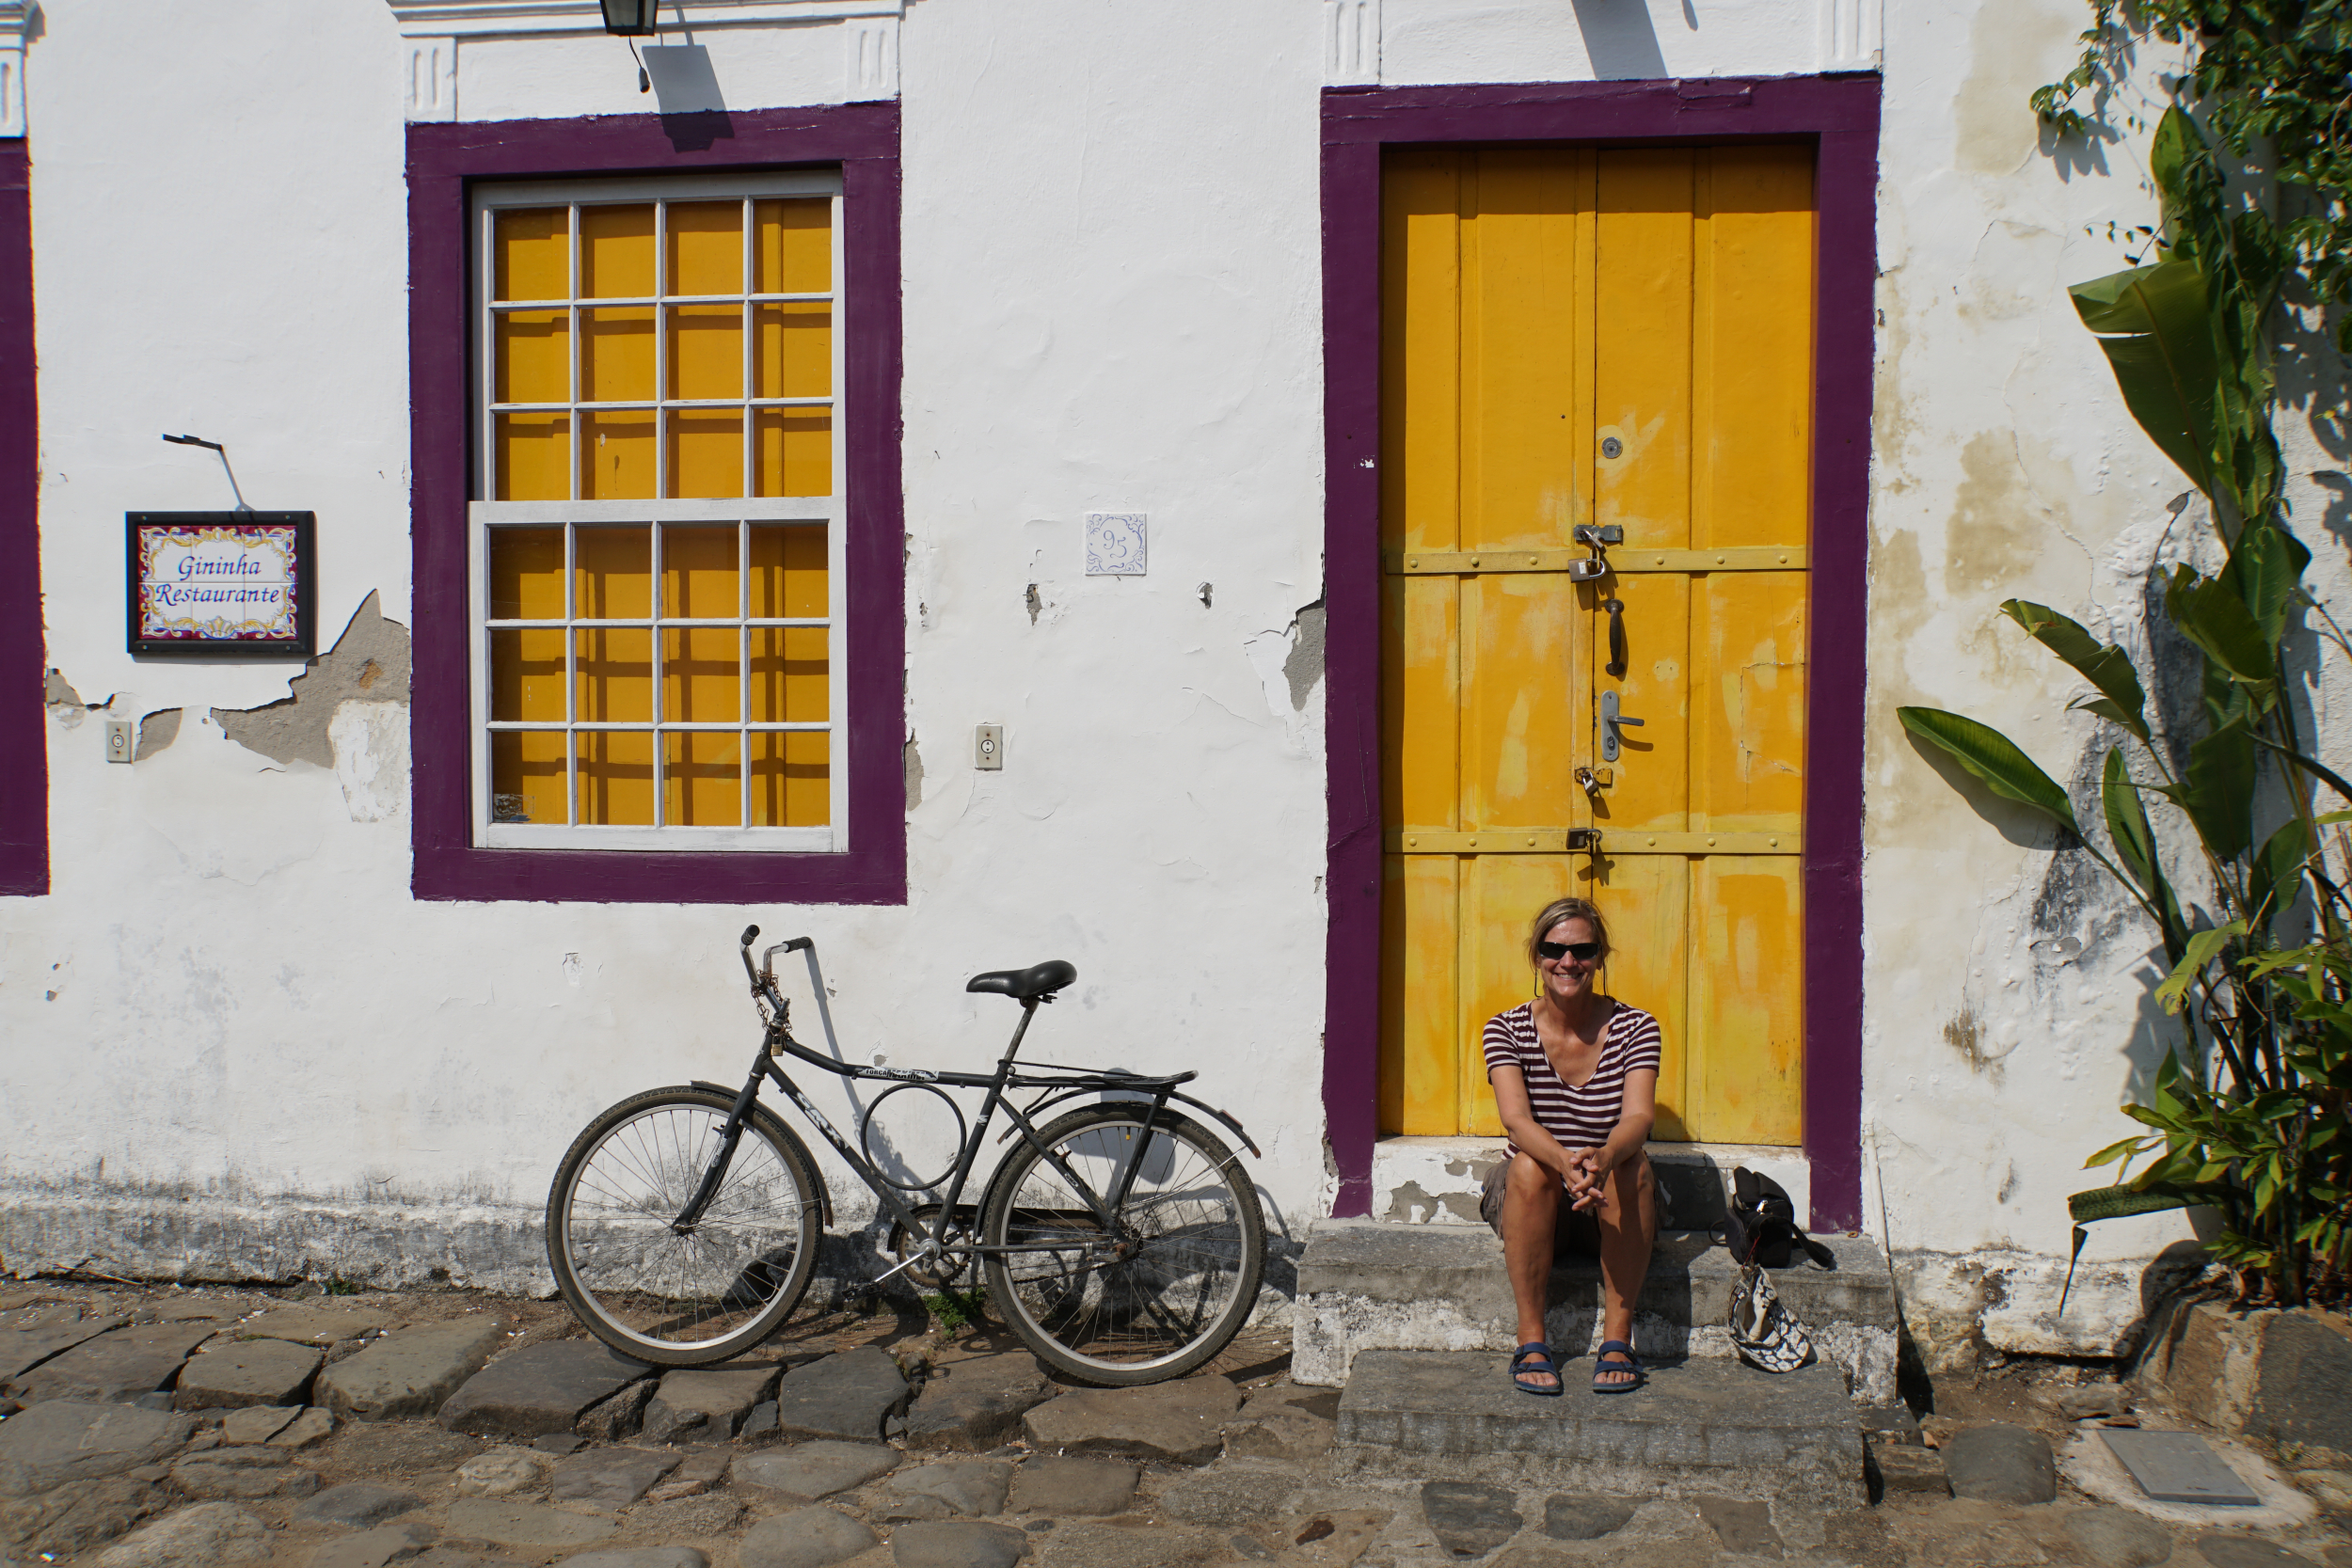 35. Cindy in Paraty